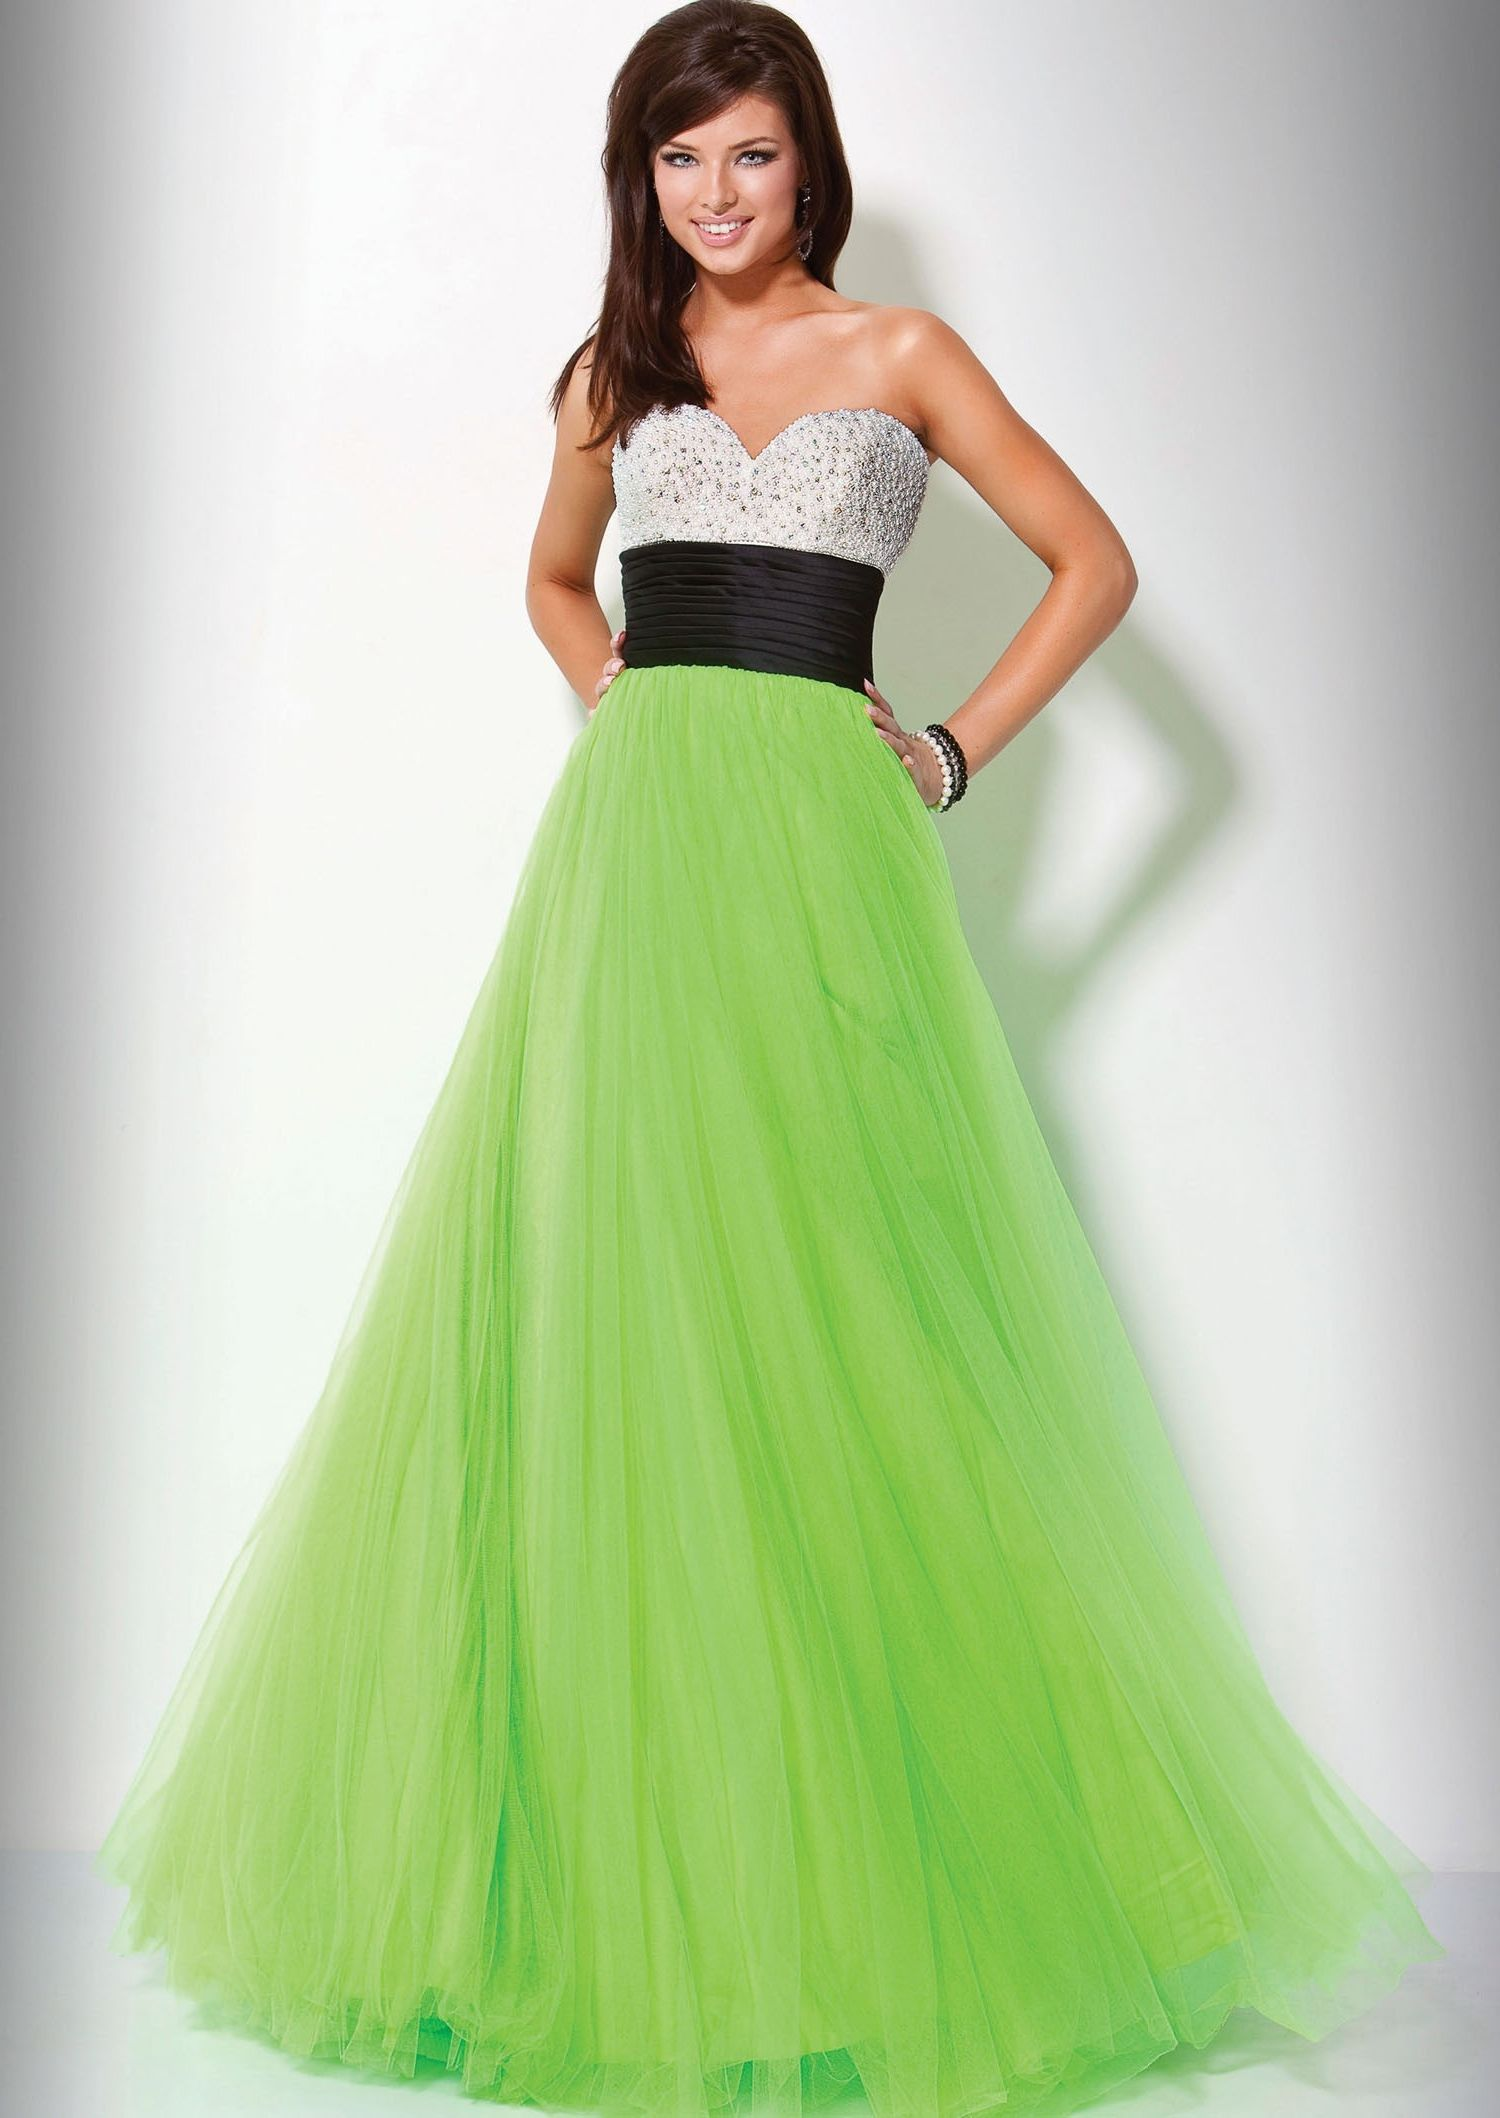 2019 year for women- Dresses quinceanera neon green and black